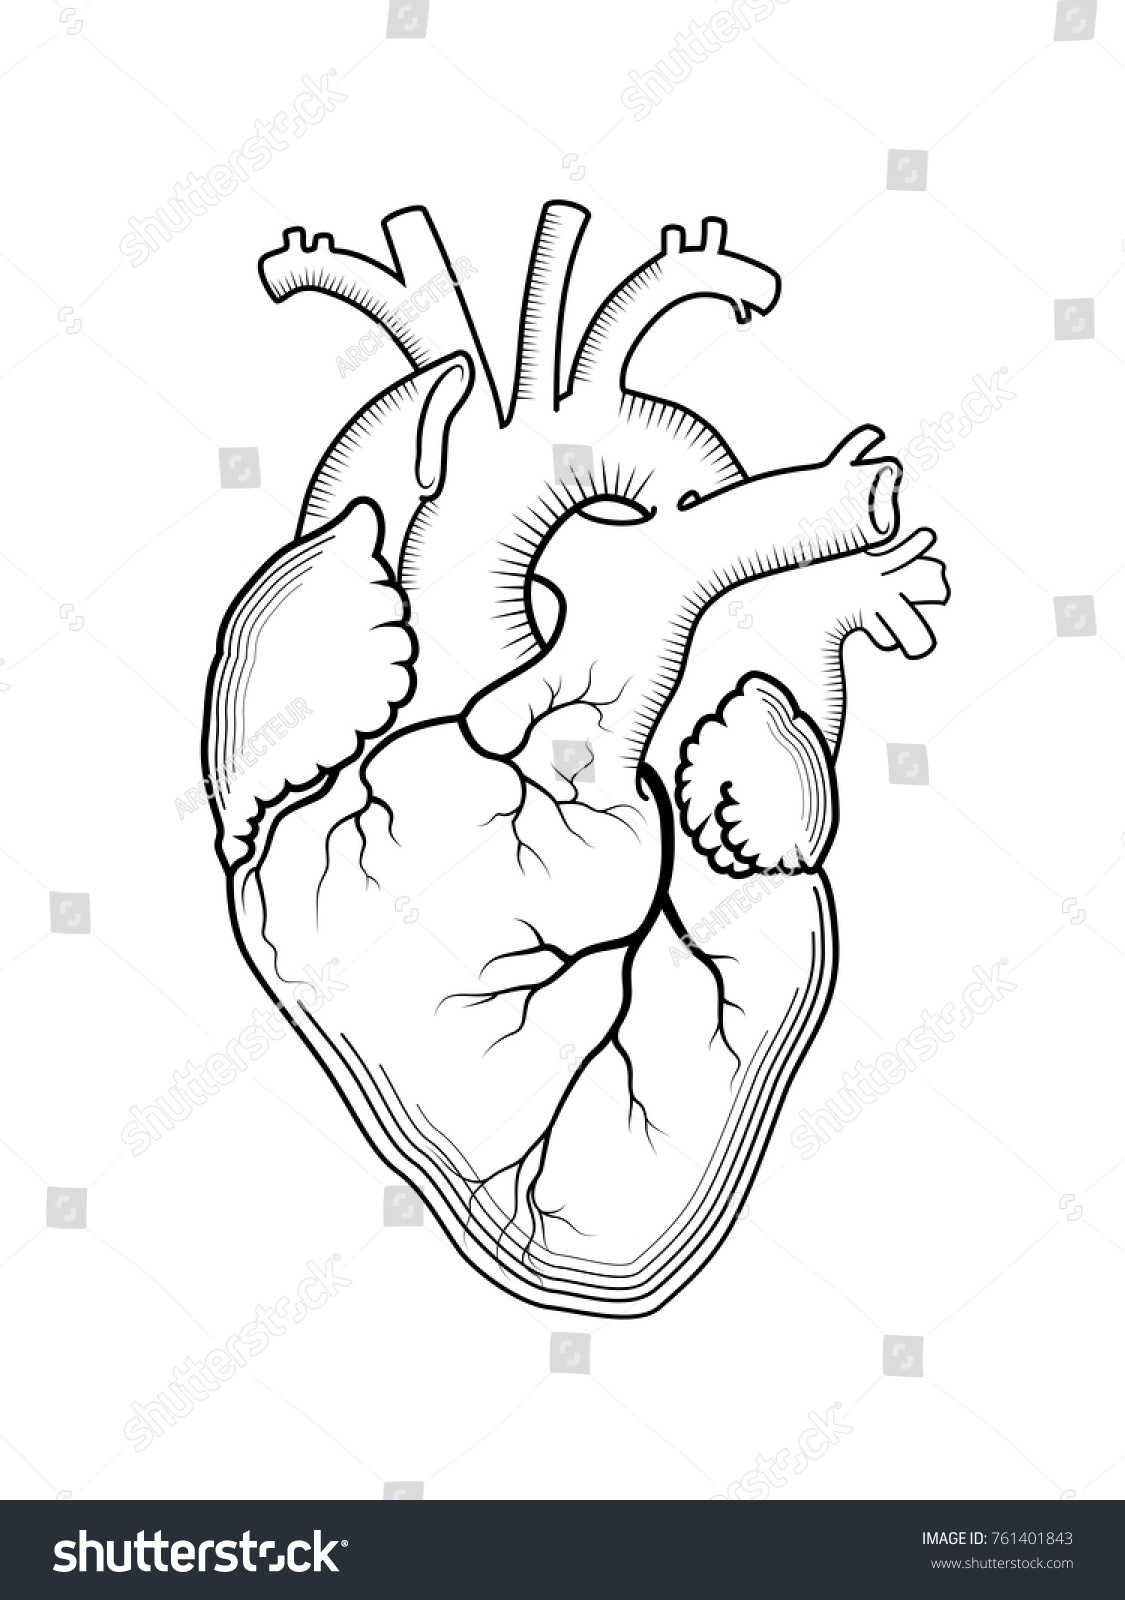 organ diagram outline 4 way trailer wiring harness heart internal human anatomical structure stock